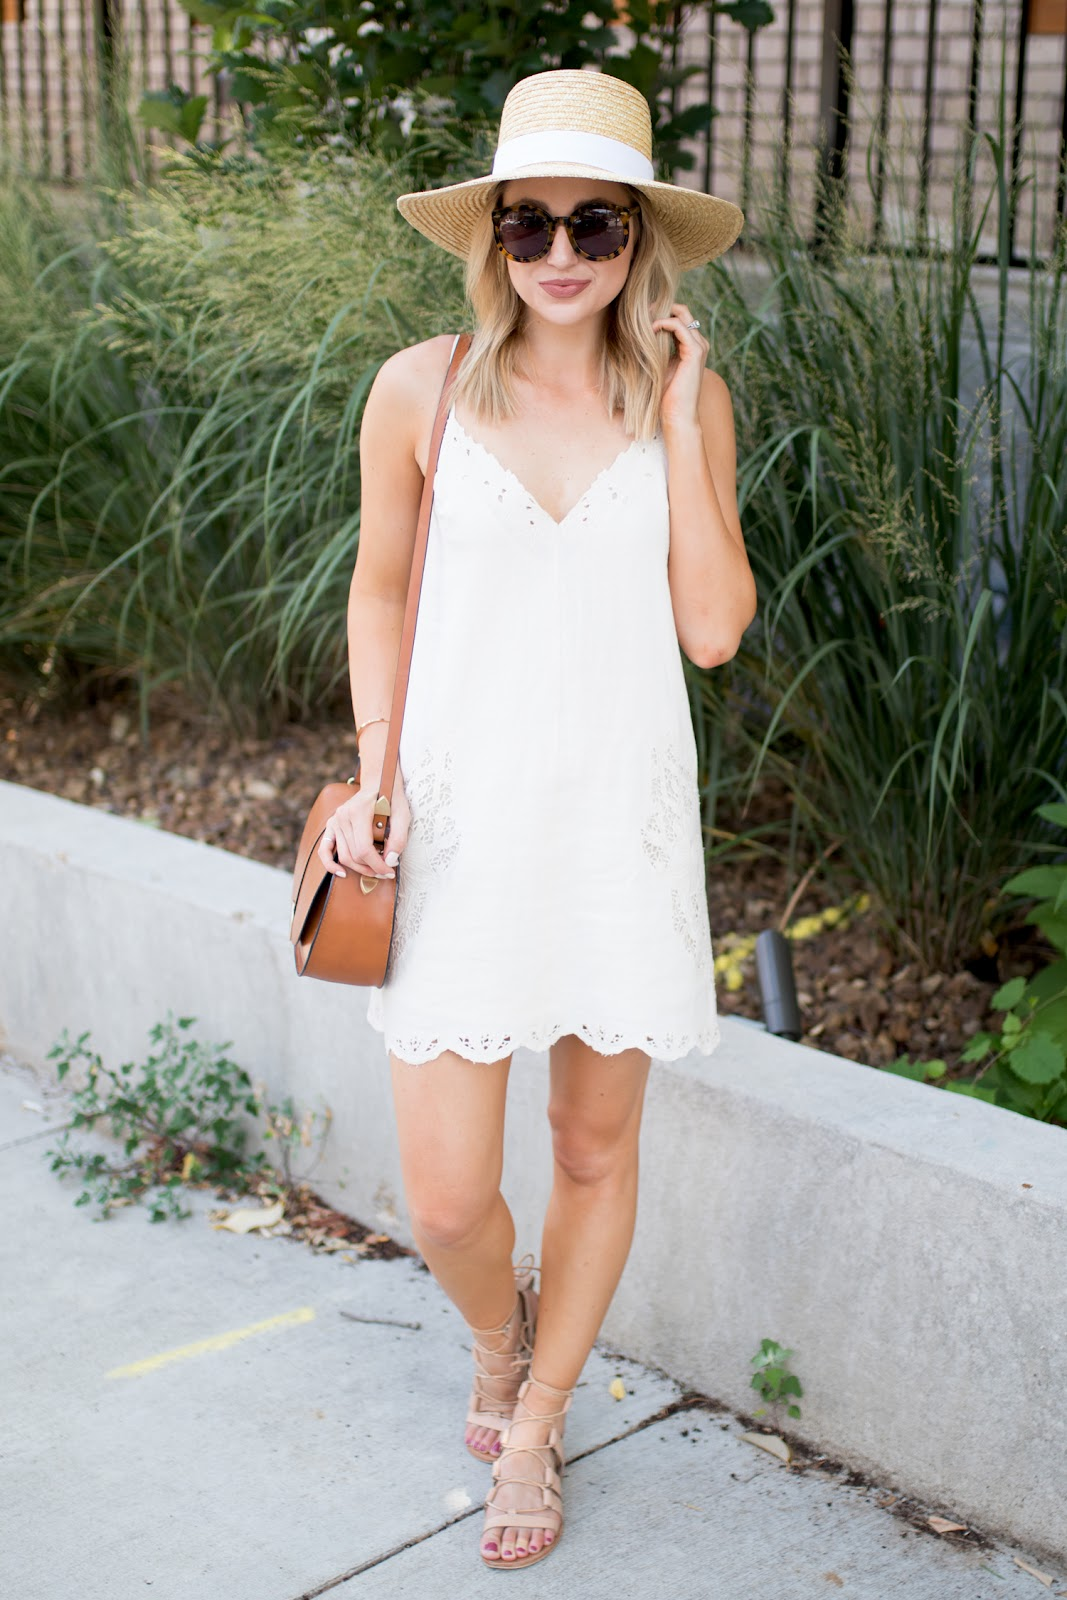 White eyelet sundress with a straw hat